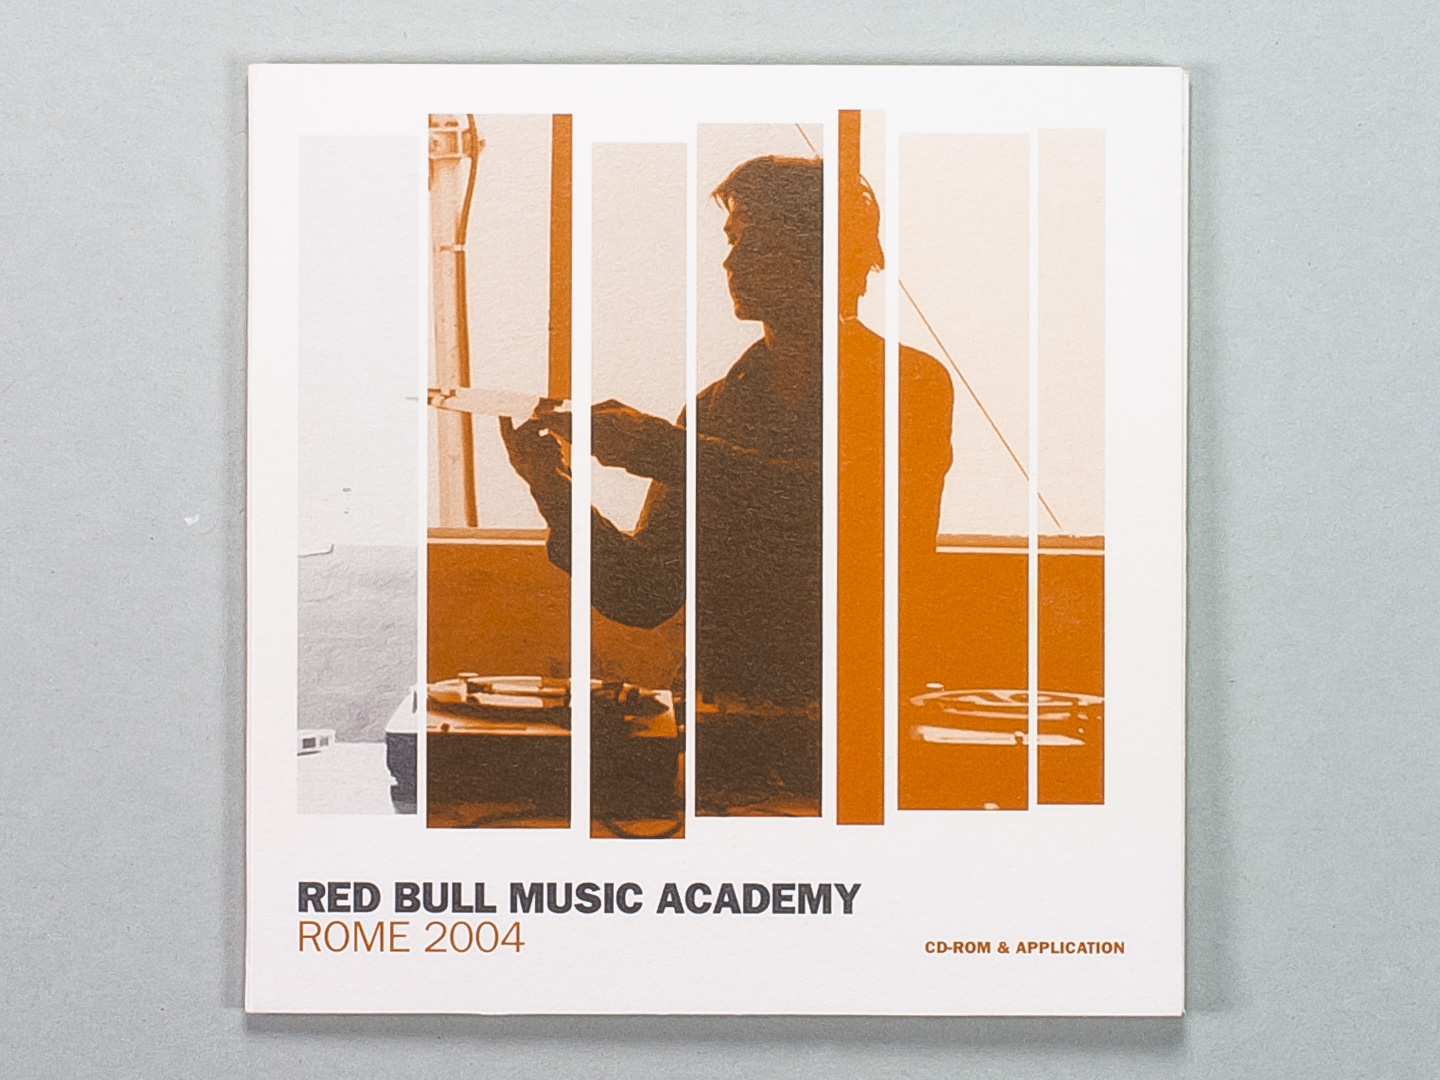 Red Bull Music Academy · Application Info · Rome 2004